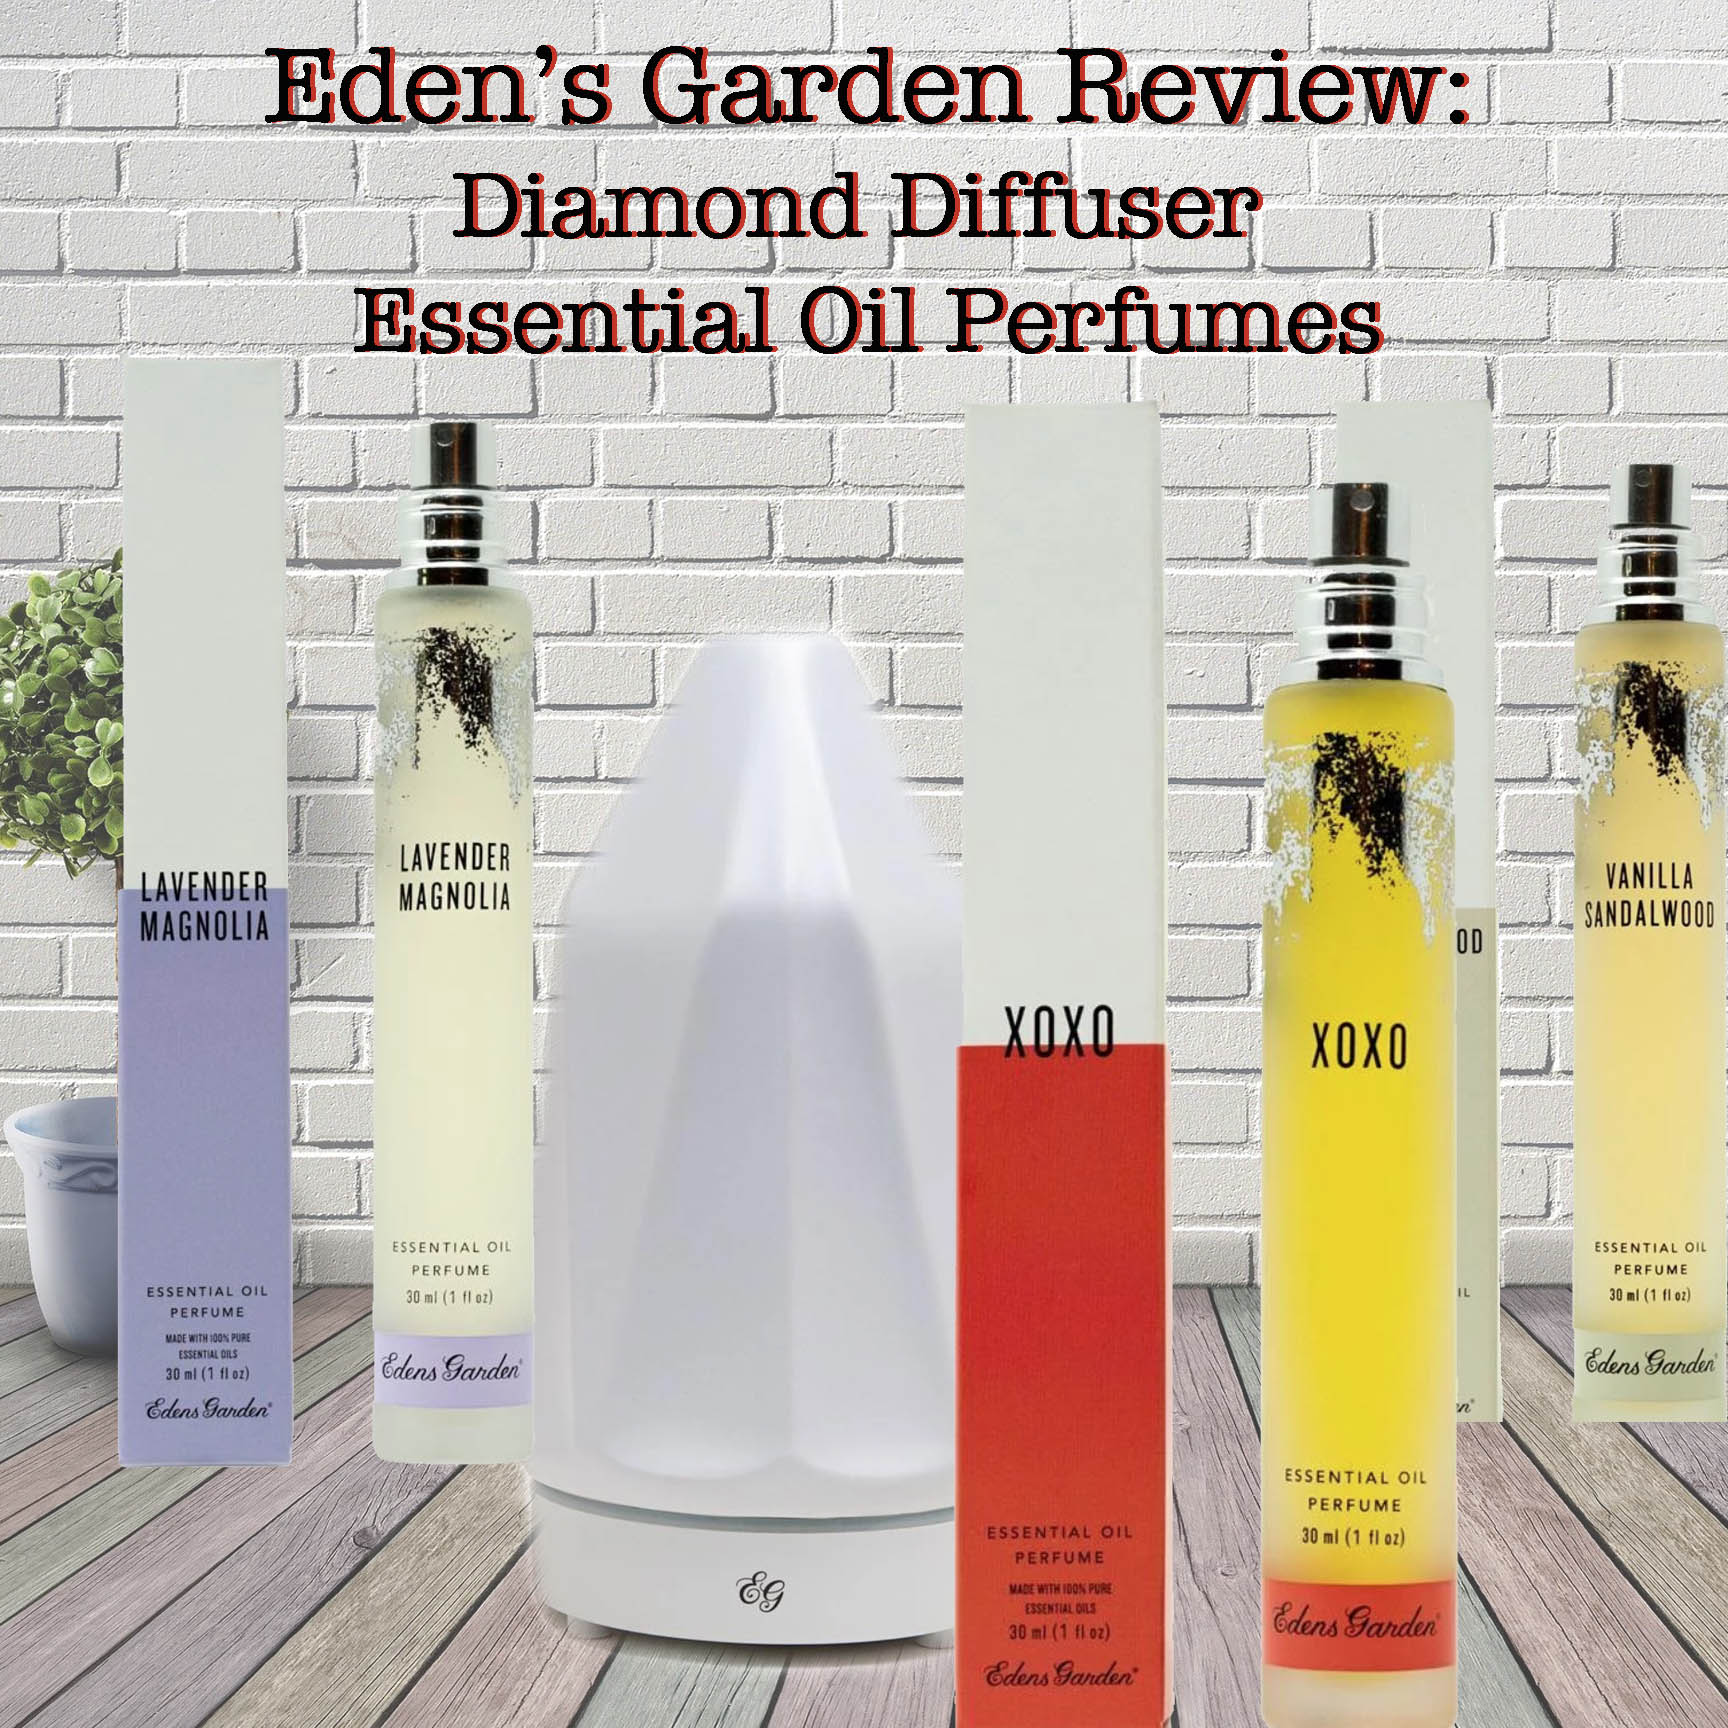 Eden S Garden Essential Oil Perfumes And Ceramic Diamond Diffuser Review Sweet Honeybee Health